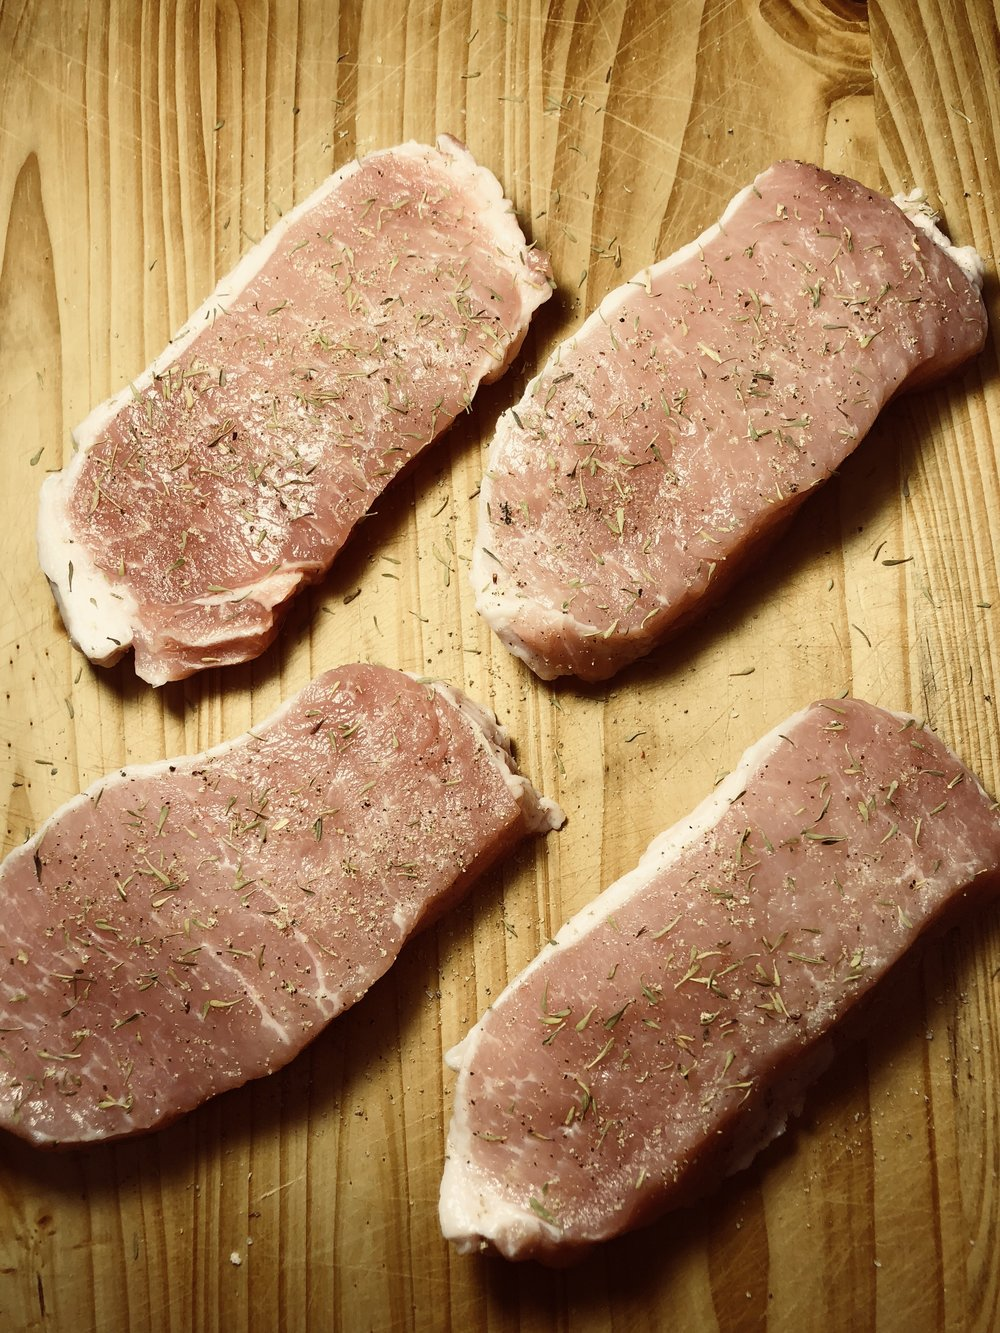 Pork chops seasoned with salt, pepper and thyme.